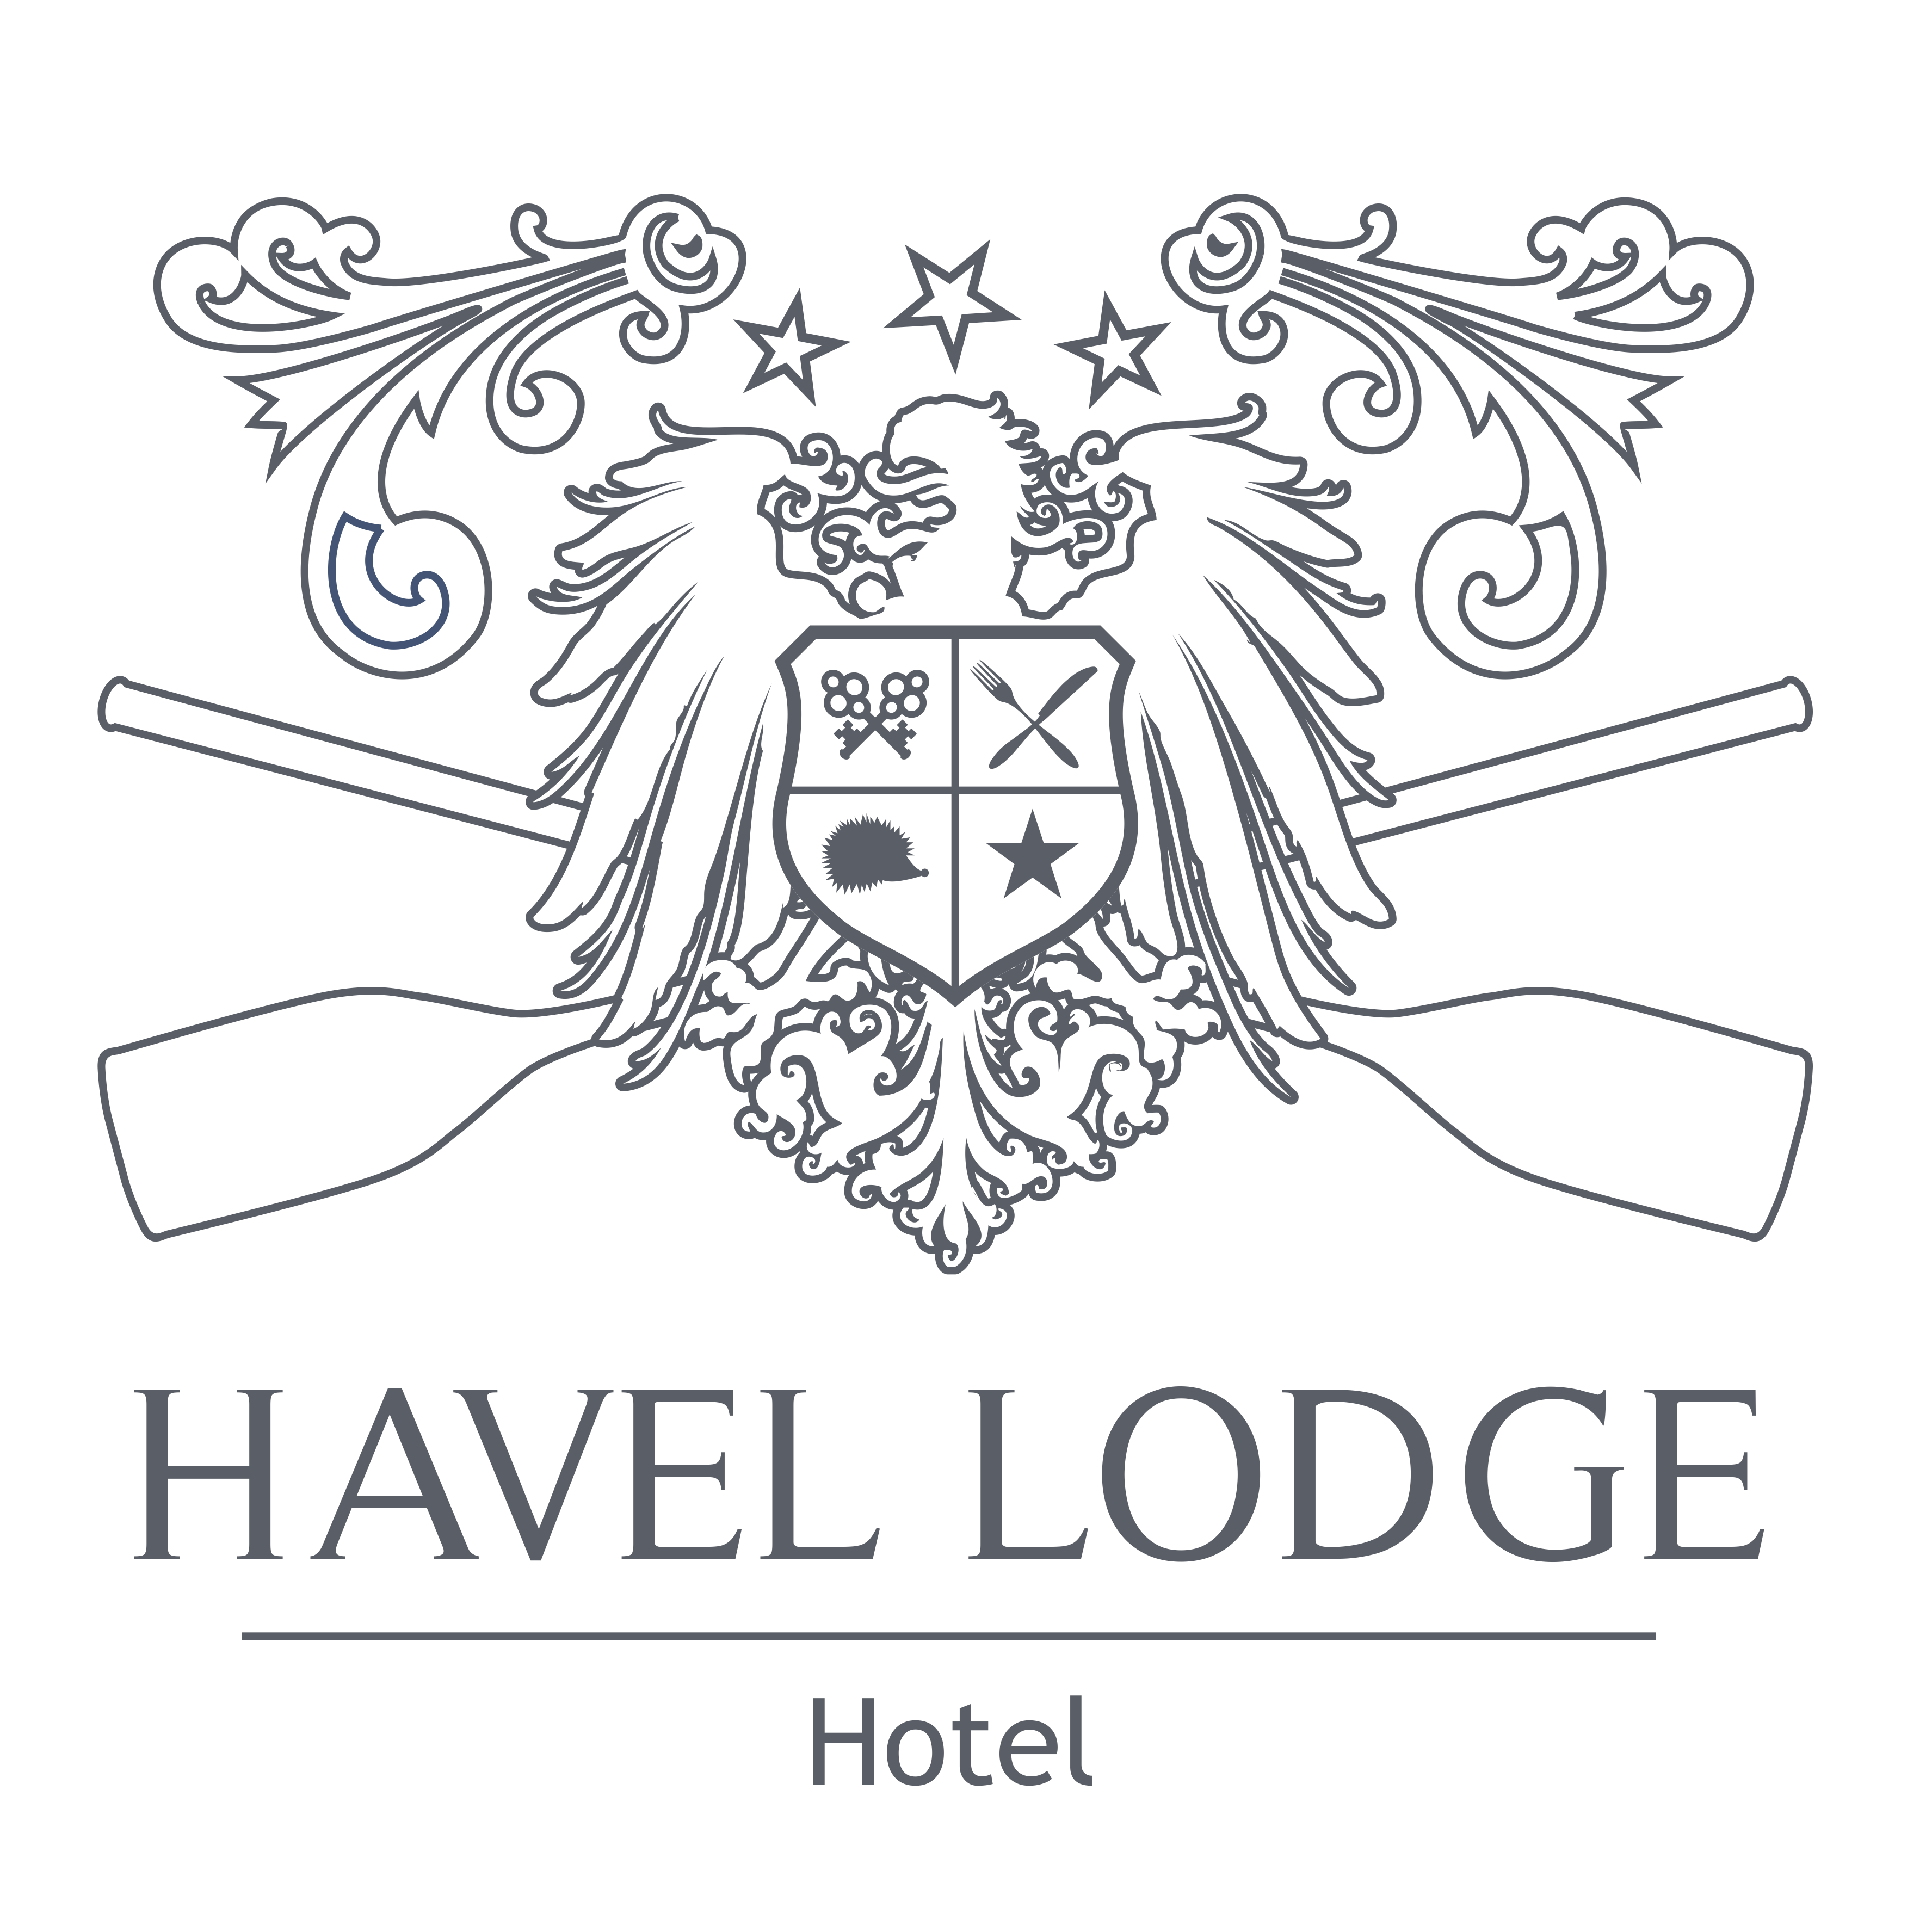 Havel Lodge